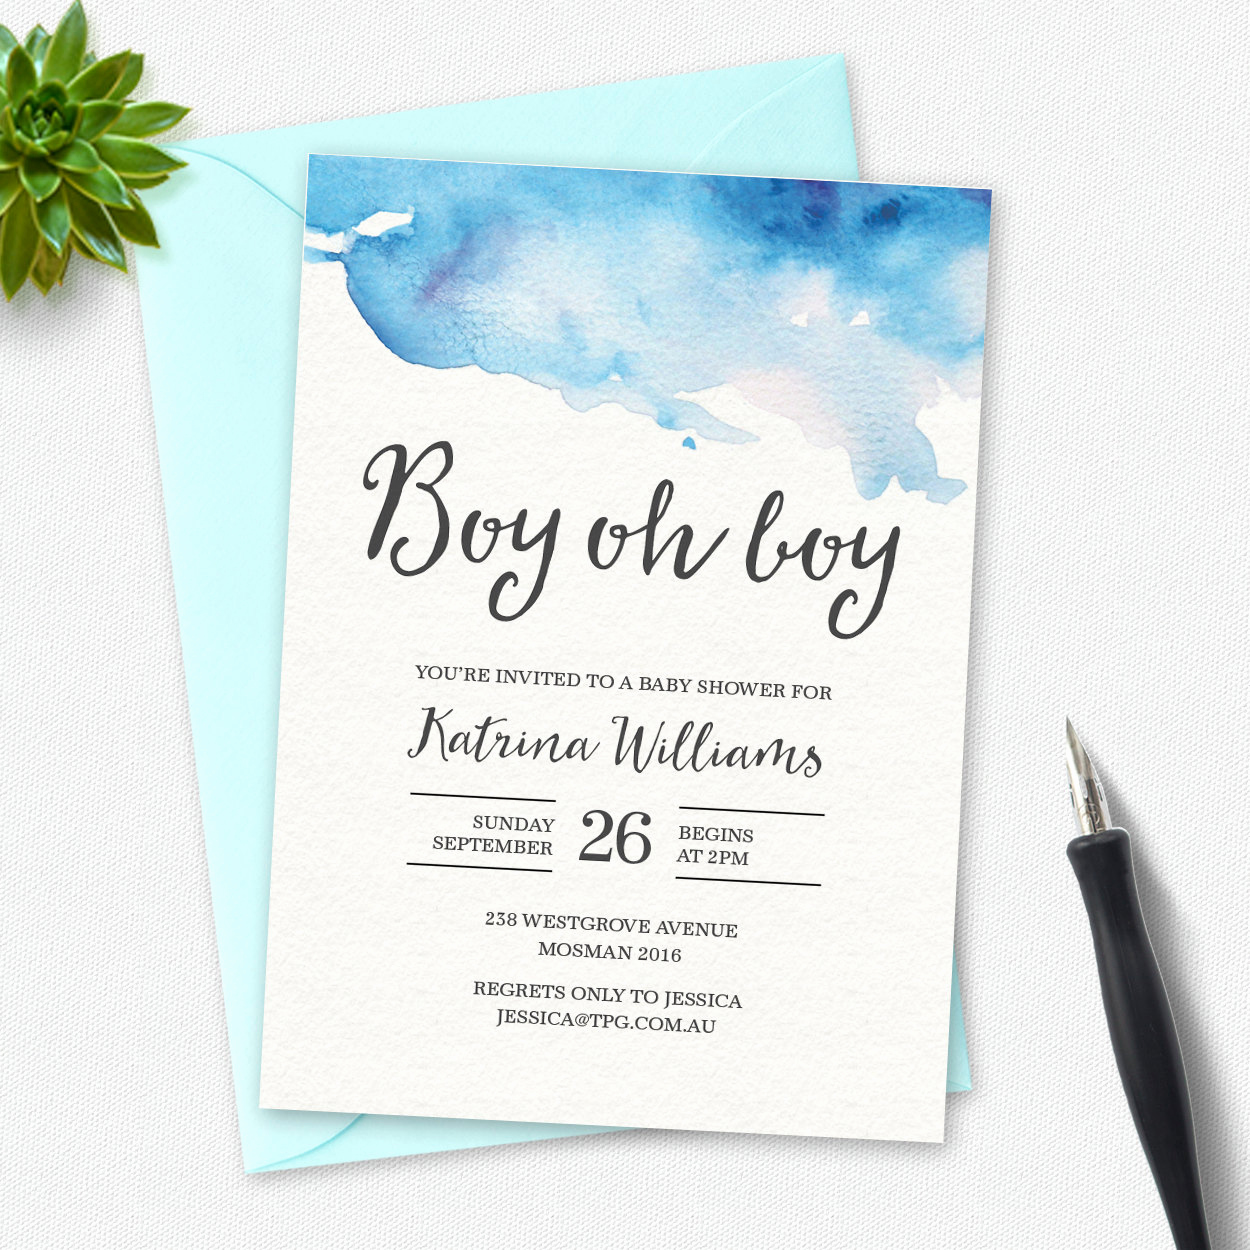 Baby Shower Invitation Pictures Beautiful Boy Baby Shower Invitation Boy Oh Boy Watercolor